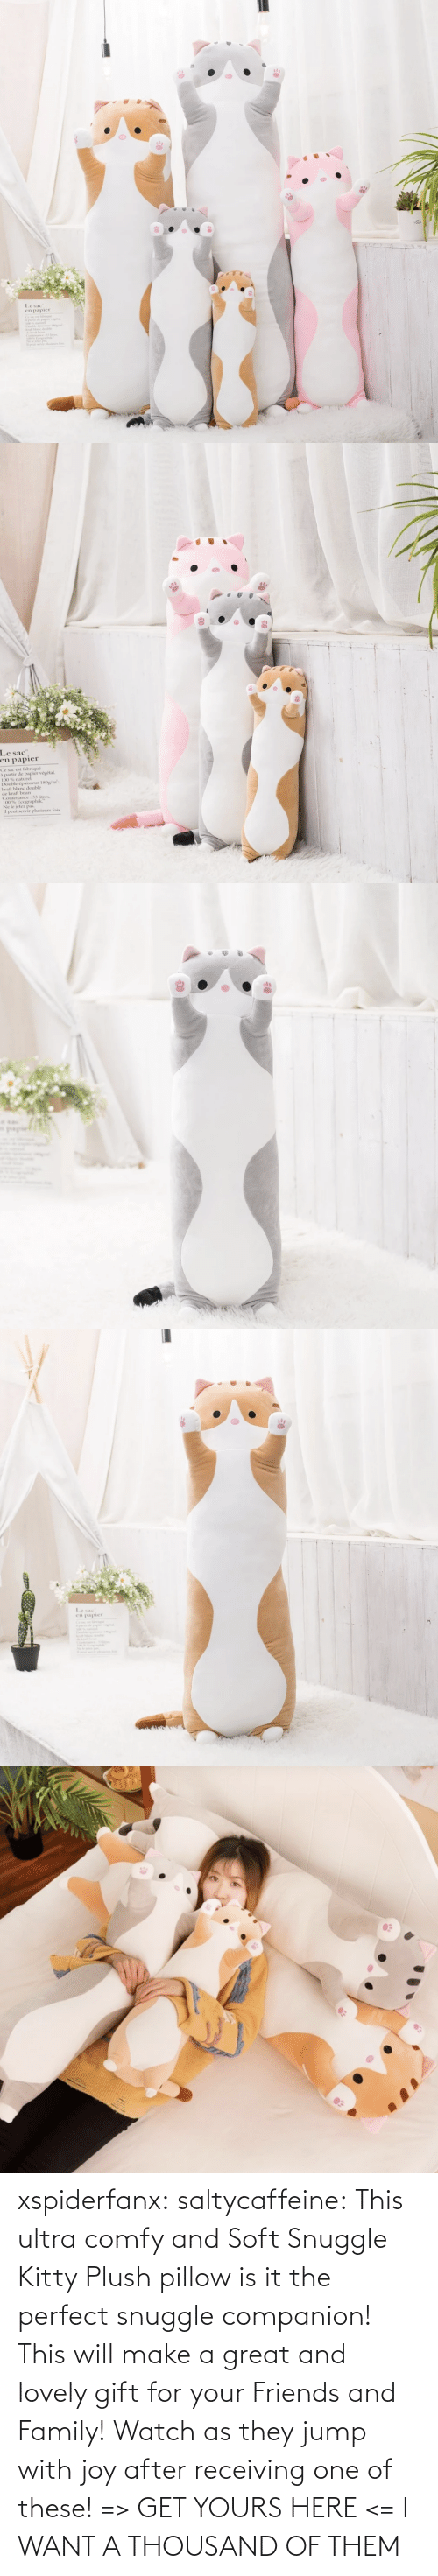 Family, Friends, and Tumblr: xspiderfanx:  saltycaffeine: This ultra comfy and Soft Snuggle Kitty Plush pillow is it the perfect snuggle companion! This will make a great and lovely gift for your Friends and Family! Watch as they jump with joy after receiving one of these! => GET YOURS HERE <=    I WANT A THOUSAND OF THEM